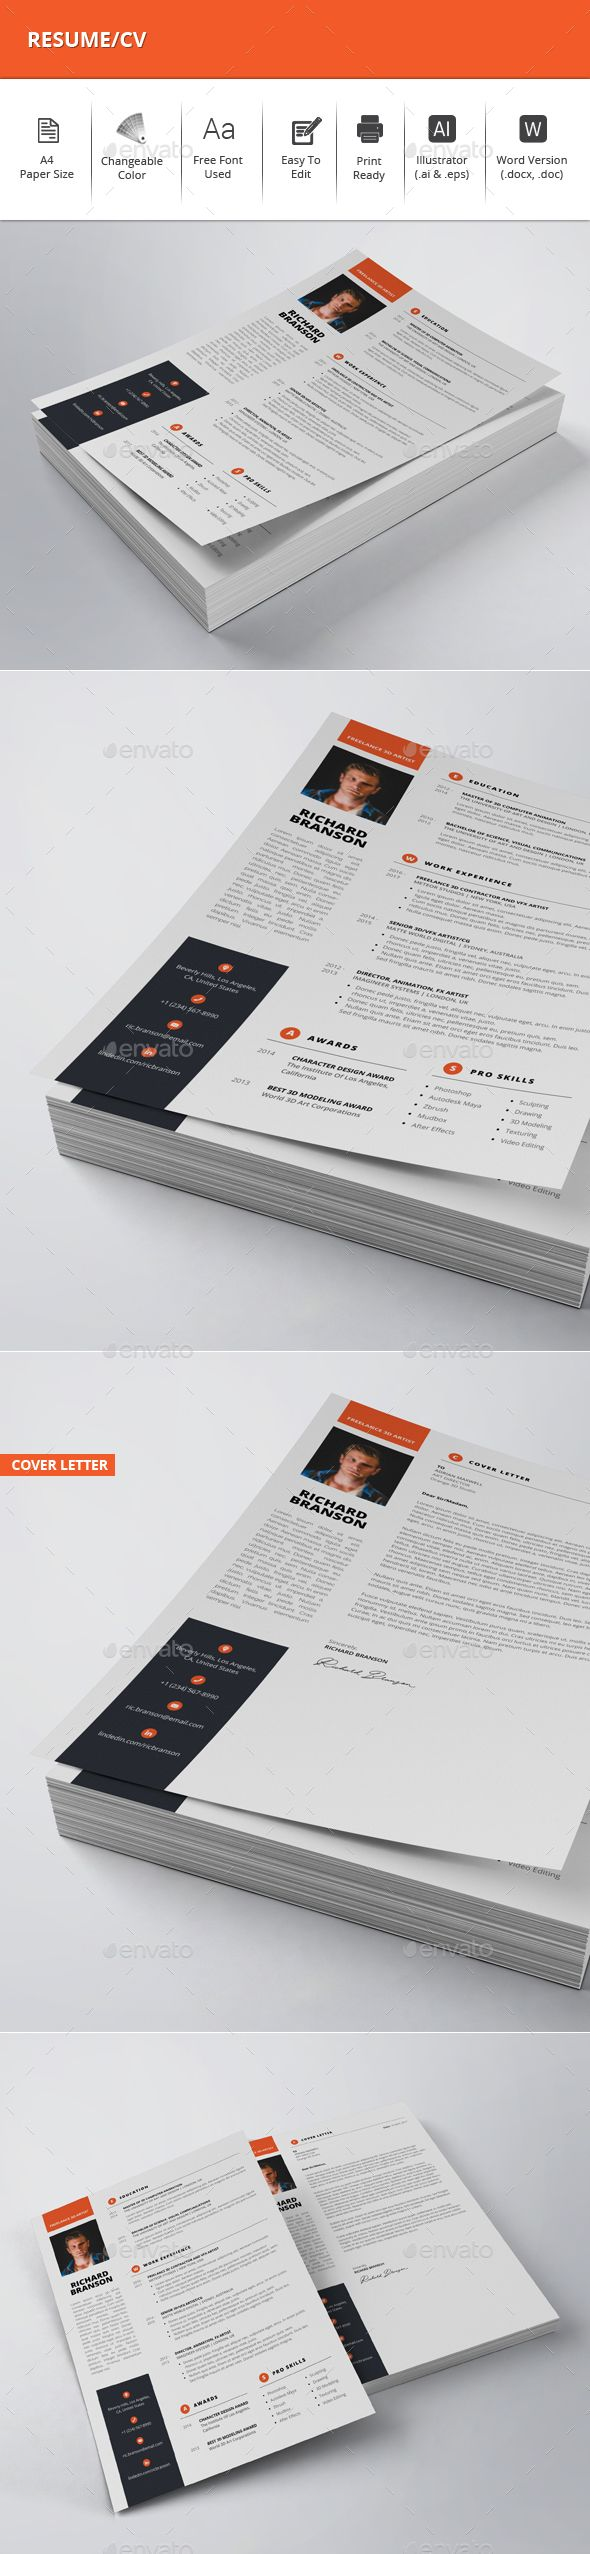 ResumeCV 1552 best Resume Design images on